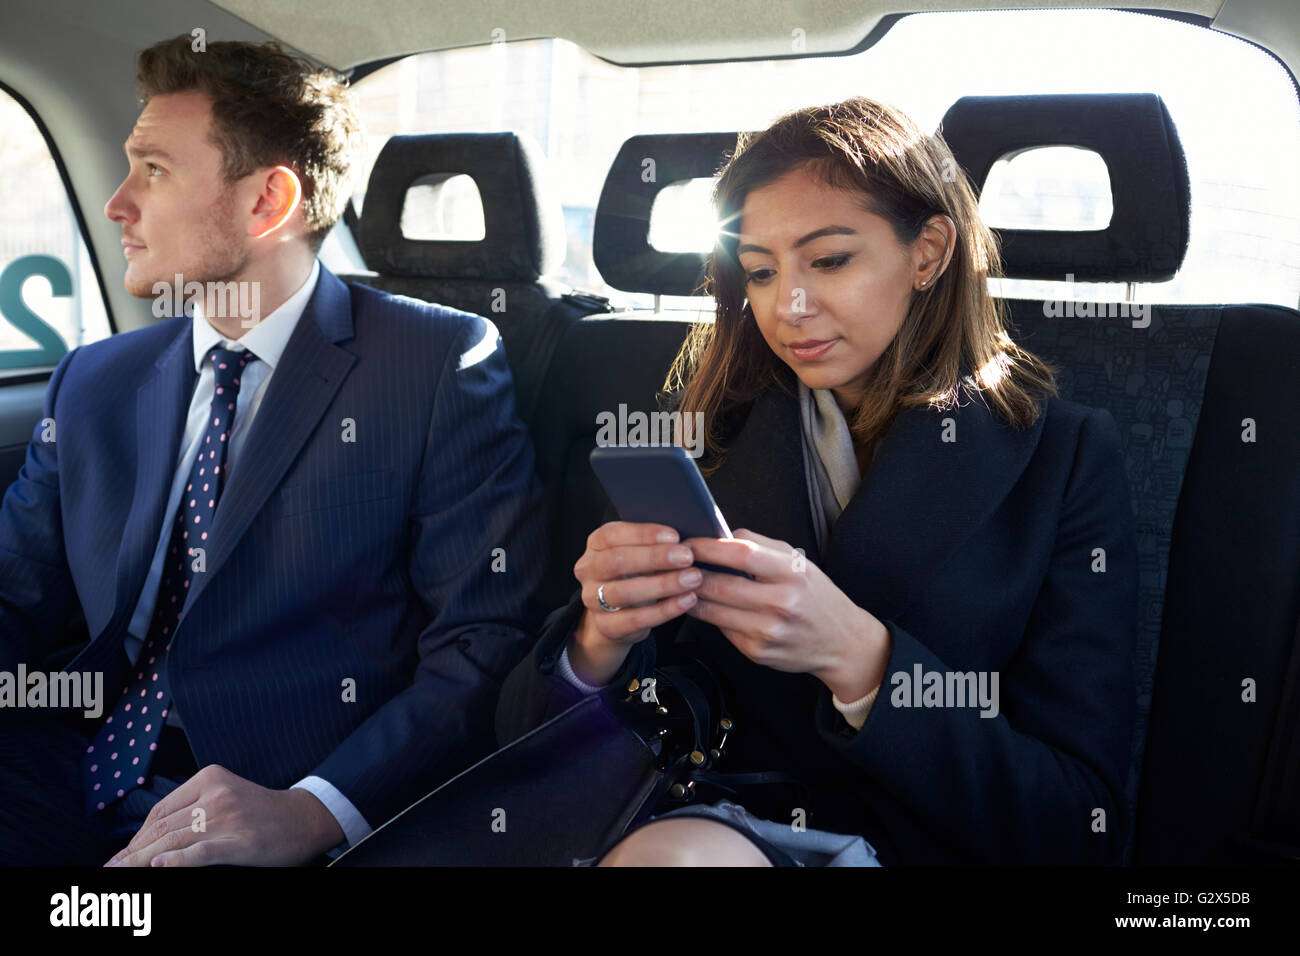 Businesspeople Travelling In Taxi Using Mobile Phones - Stock Image